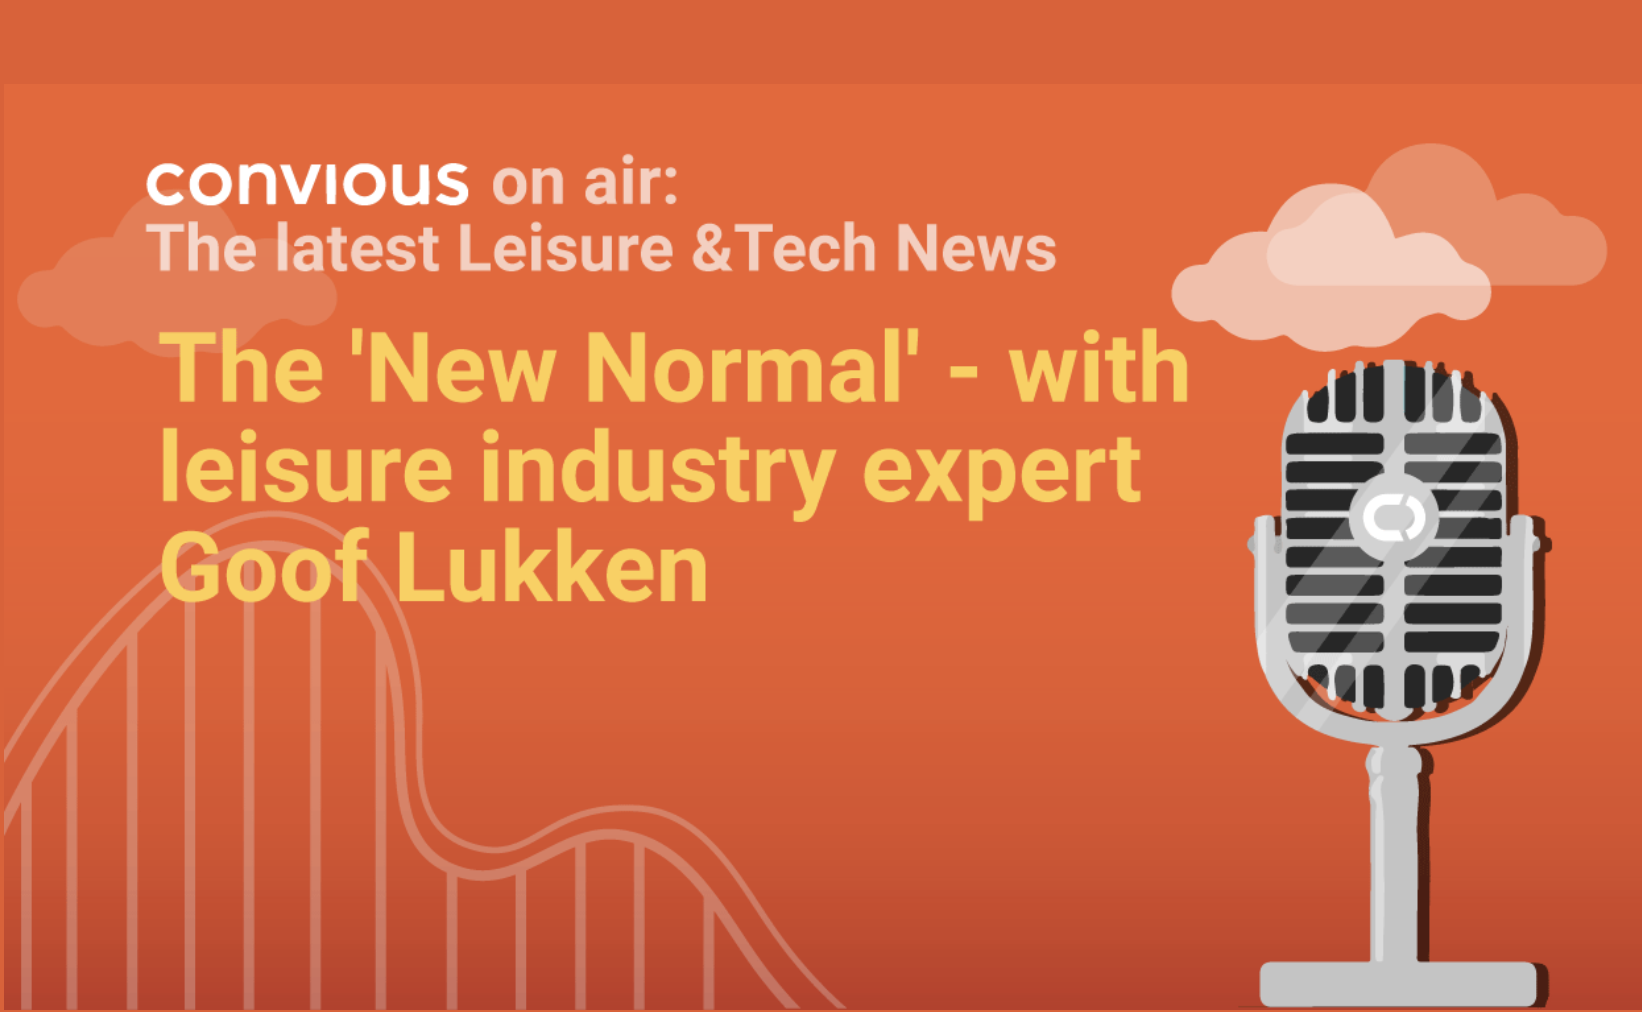 Convious on air brings an extra episode starring leisure industry expert Goof Lukken to talk about current development, opportunities and learnings